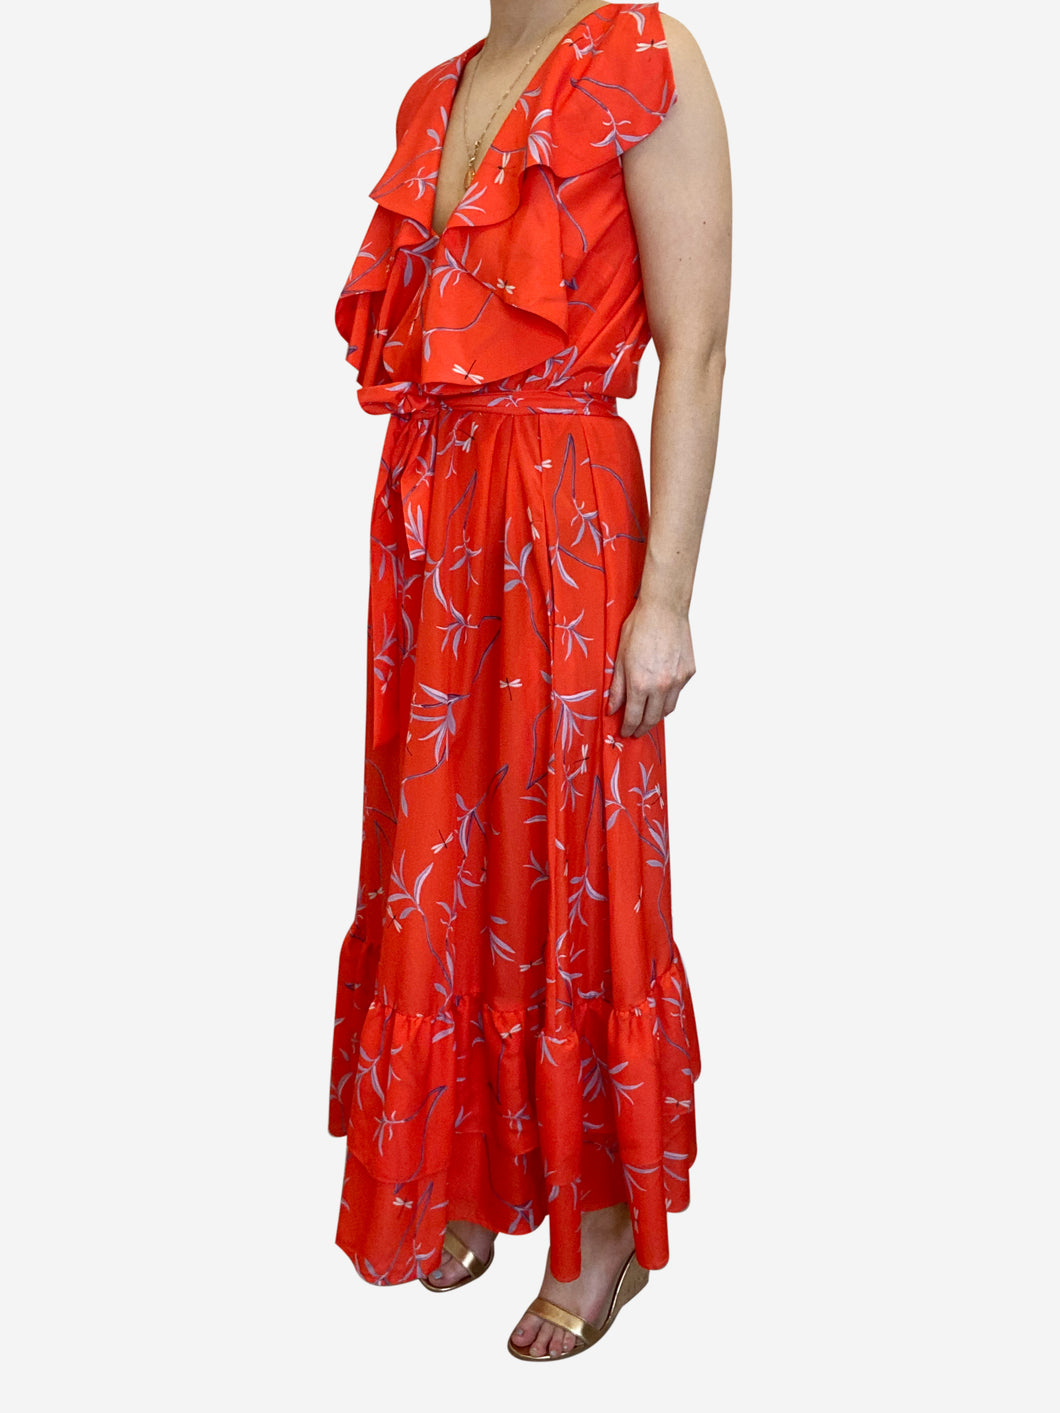 Red floral frill maxi dress - size UK 8